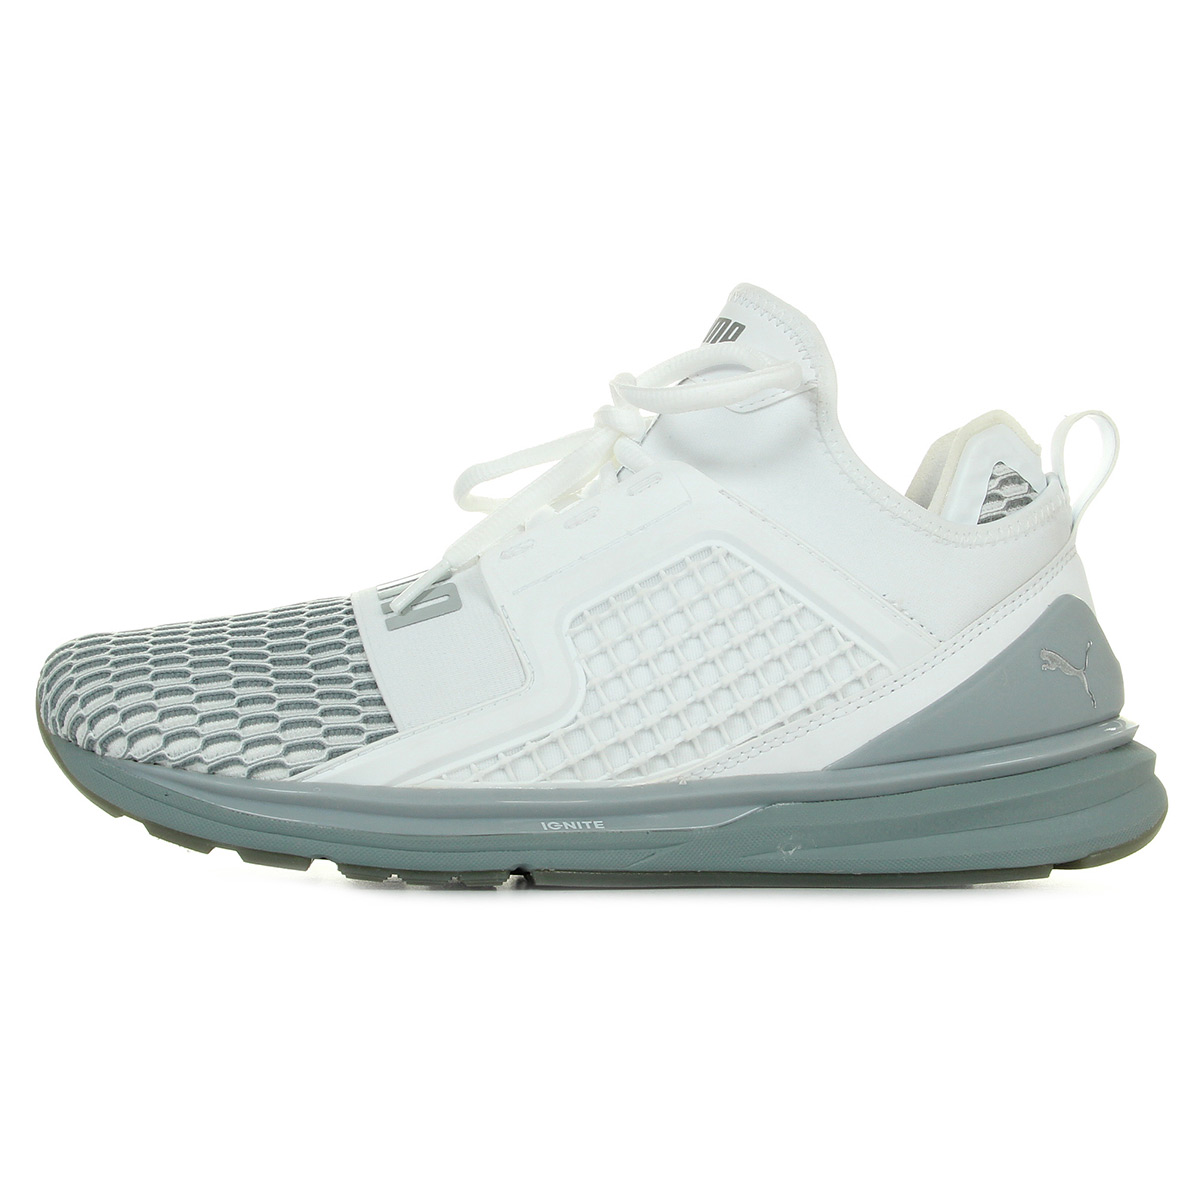 Puma Ignite Limitless 18978102, Baskets mode homme